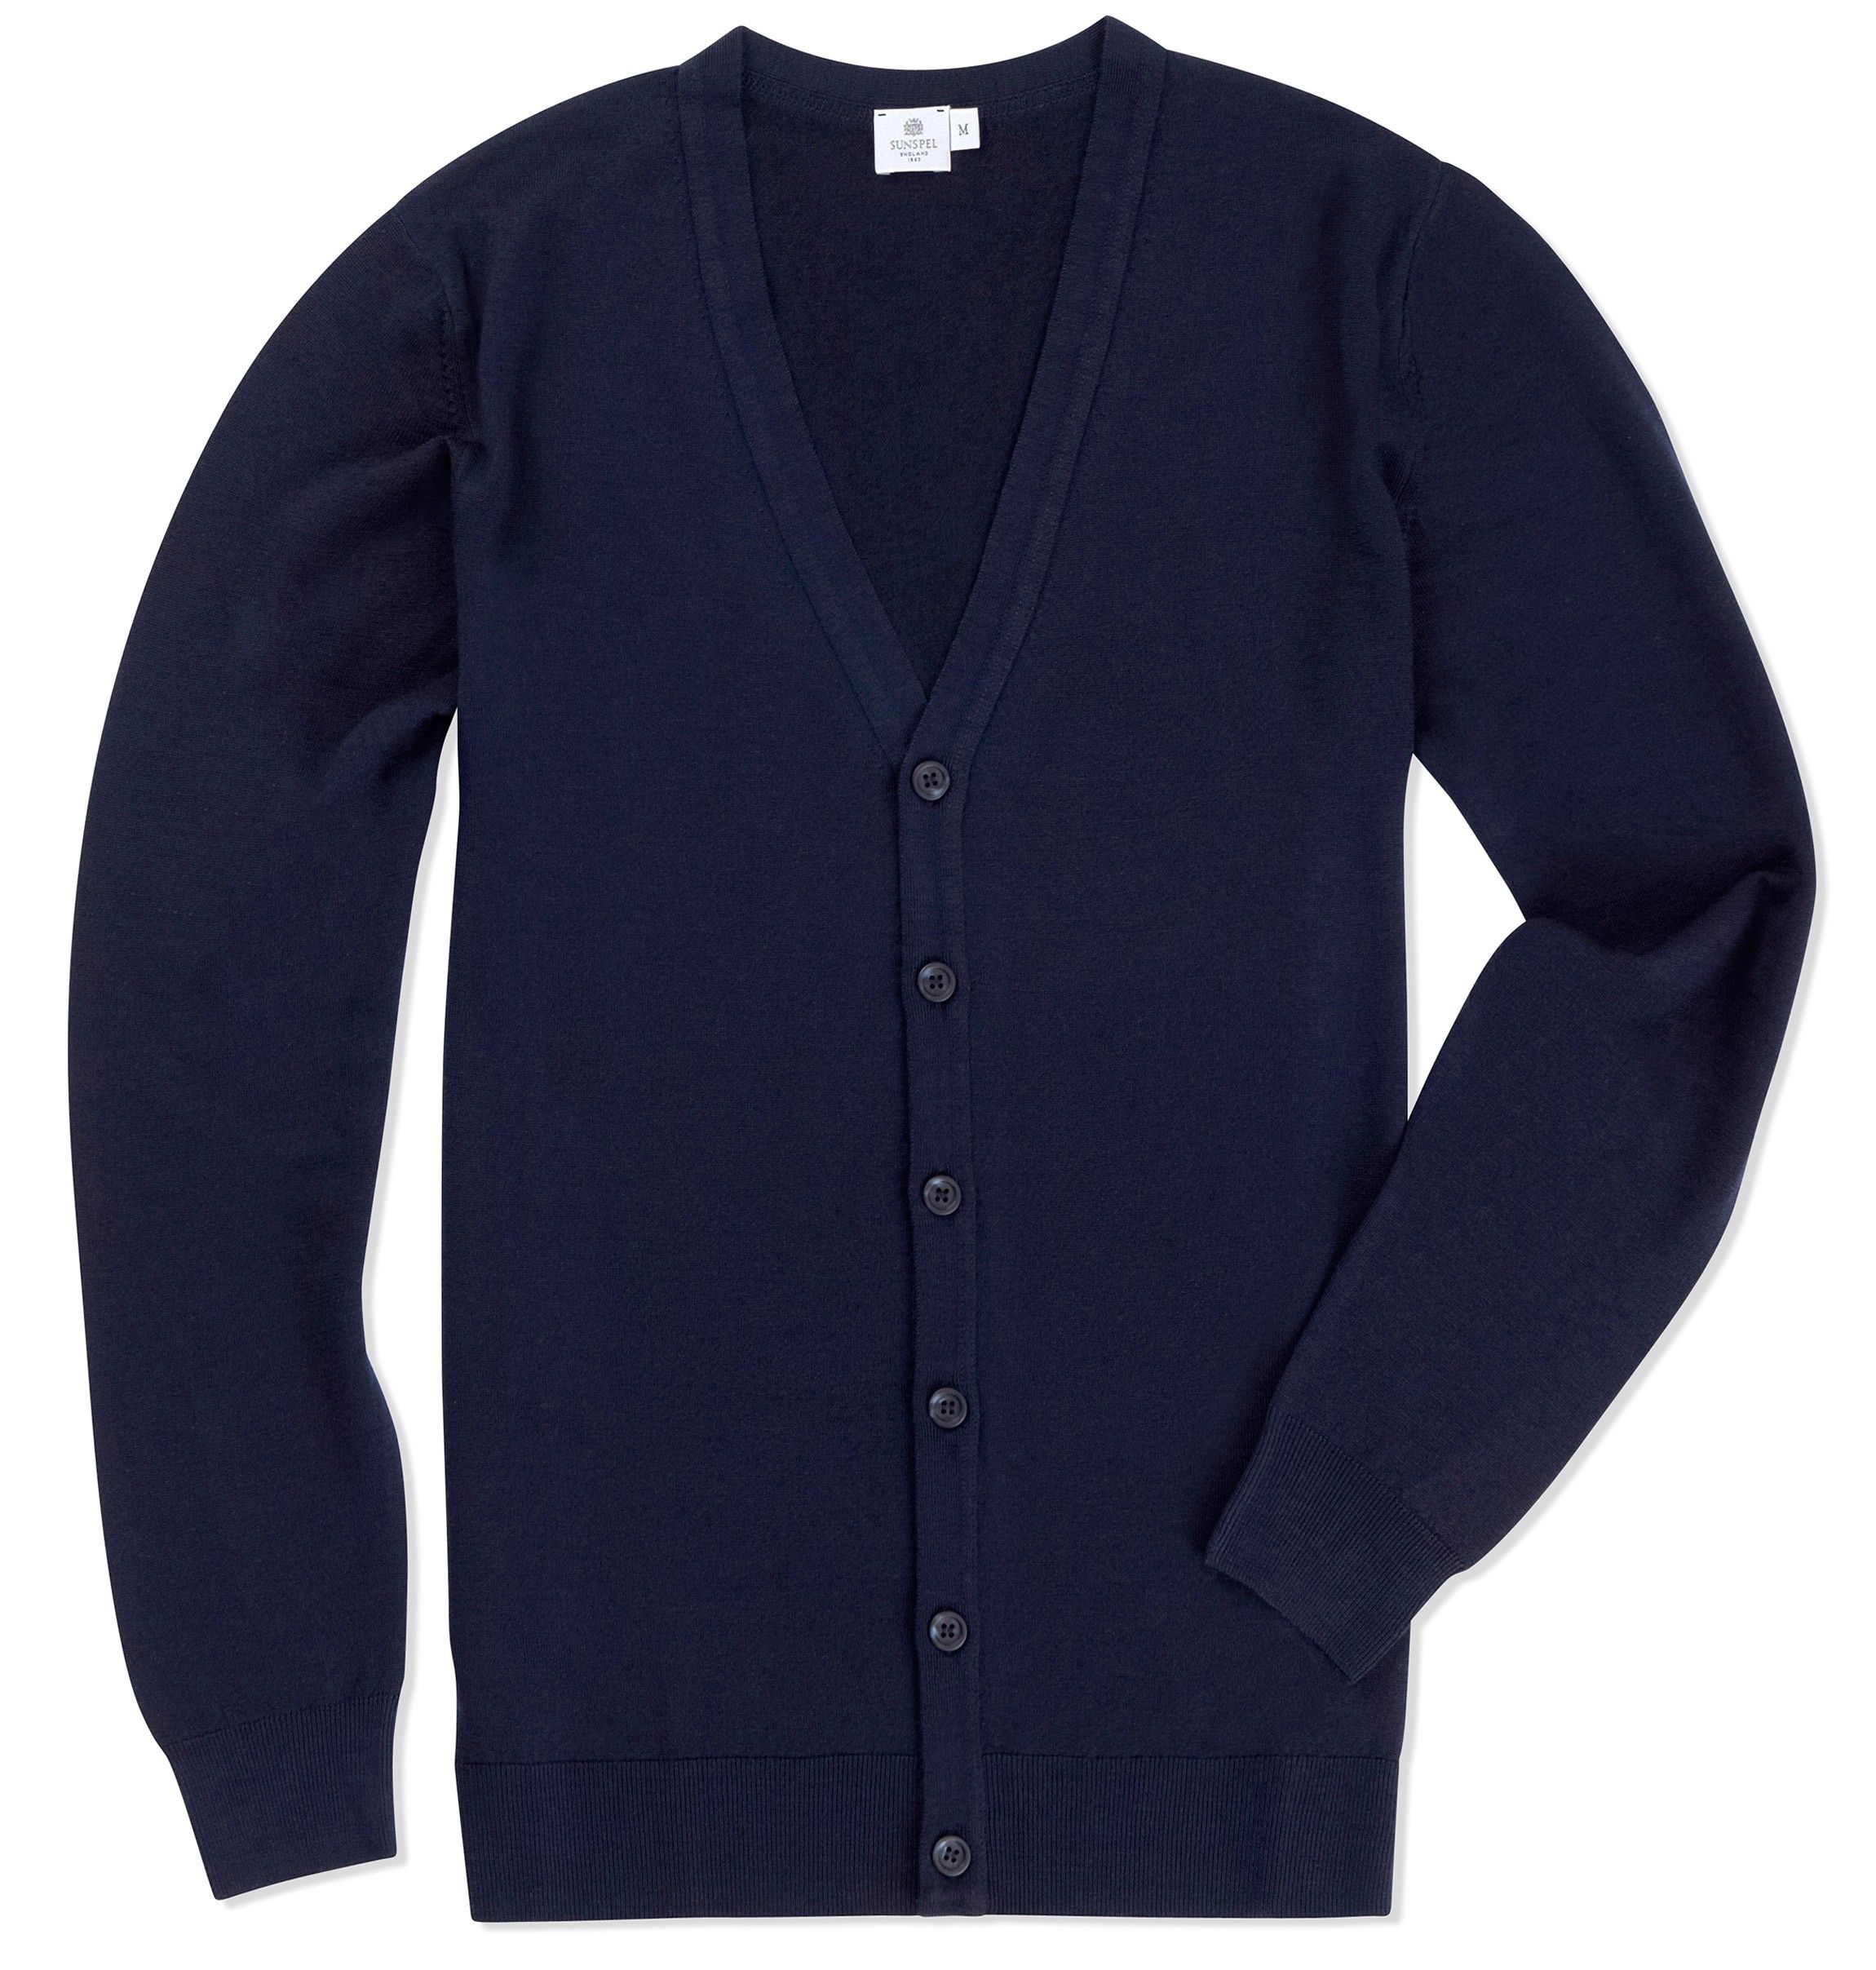 Men's Fine Merino Wool Cardigan, Light Navy | Sunspel | clothes ...